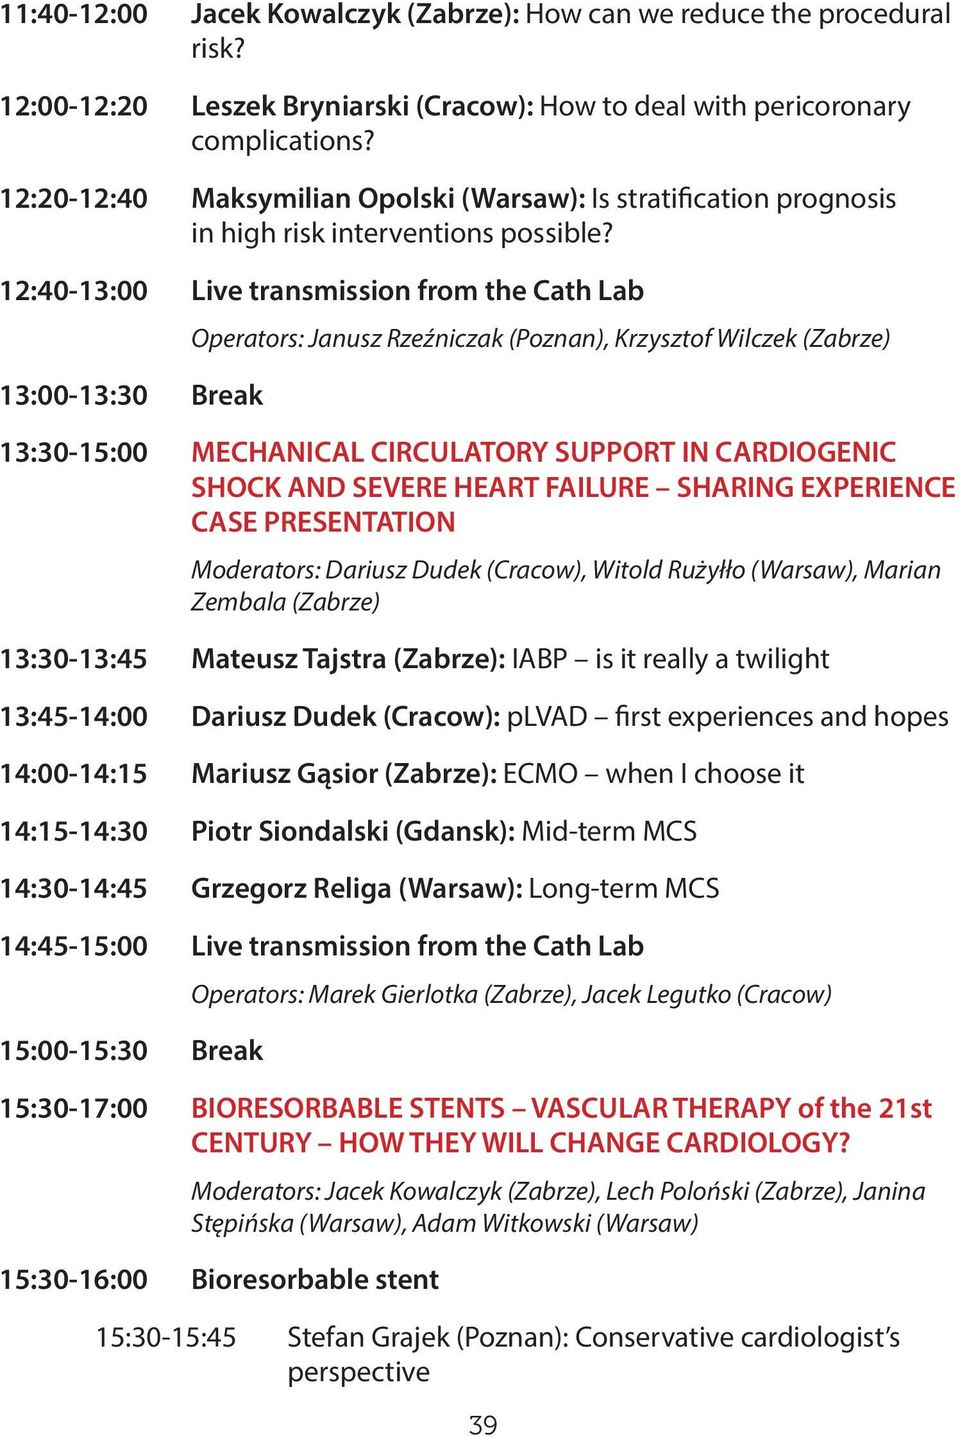 12:40-13:00 Live transmission from the Cath Lab Operators: Janusz Rzeźniczak (Poznan), Krzysztof Wilczek (Zabrze) 13:00-13:30 Break 13:30-15:00 MECHANICAL CIRCULATORY SUPPORT IN CARDIOGENIC SHOCK AND